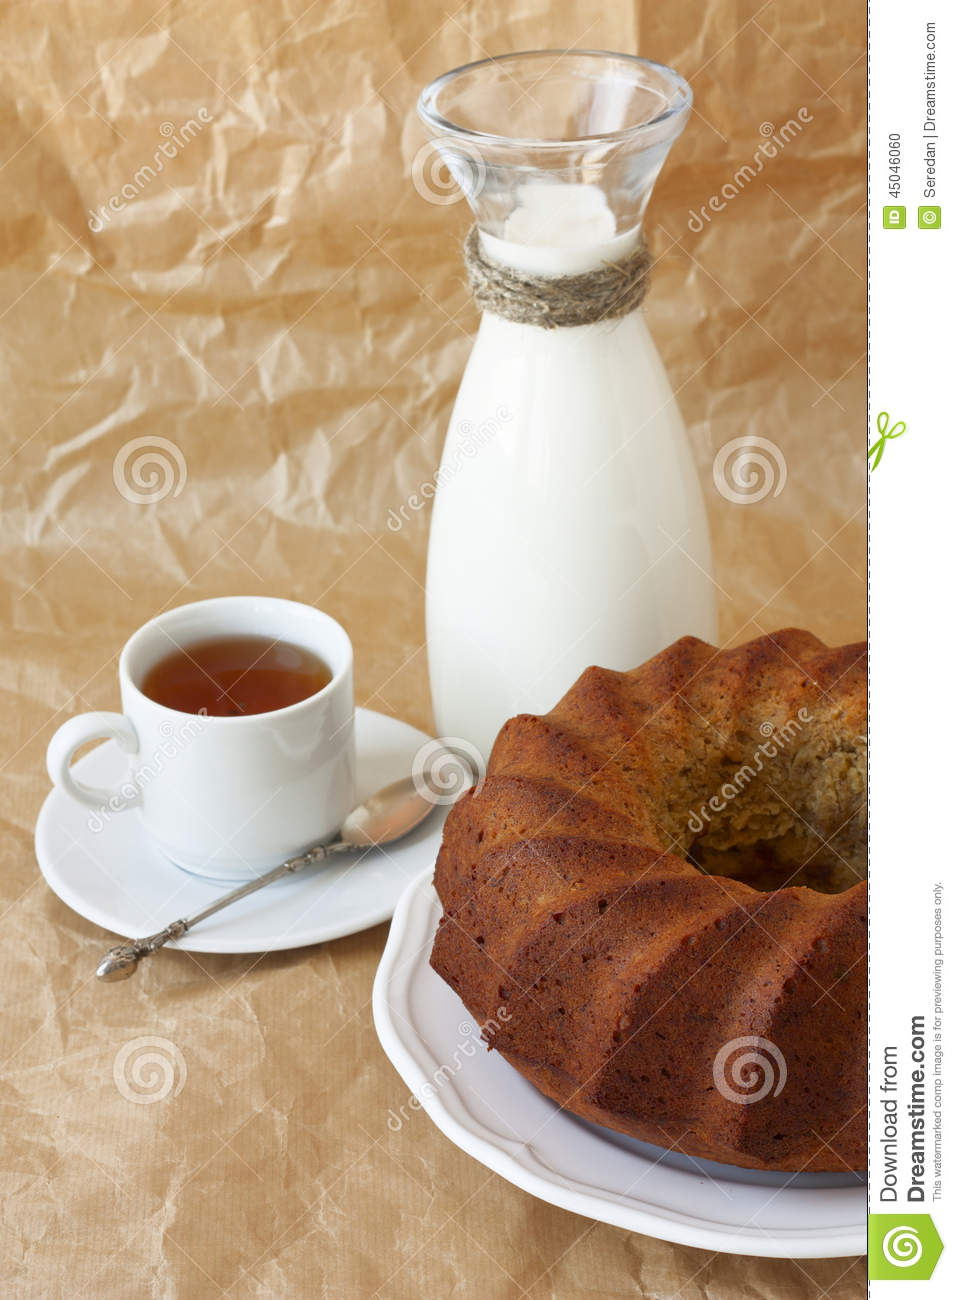 Carbohydrates In Banana Cake